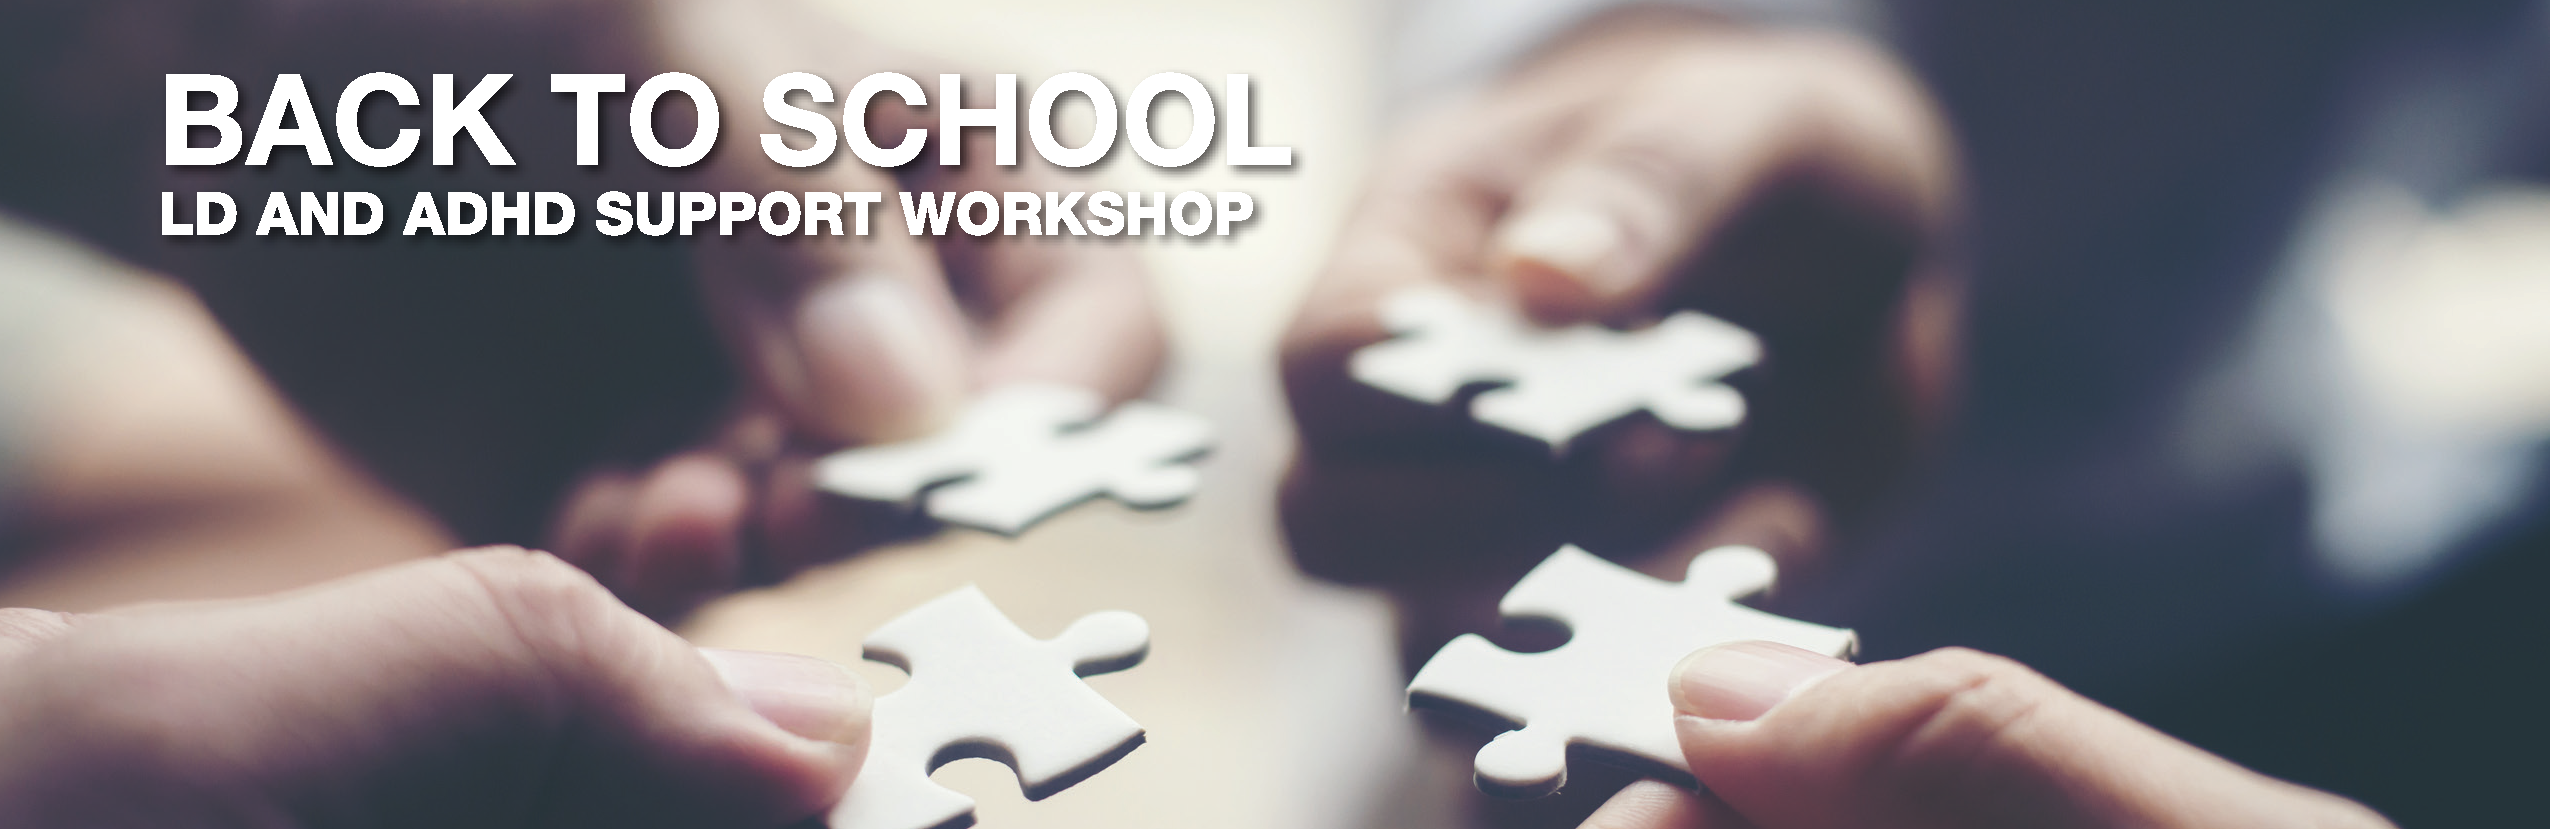 Back To School - LD and ADHD Support Workshop